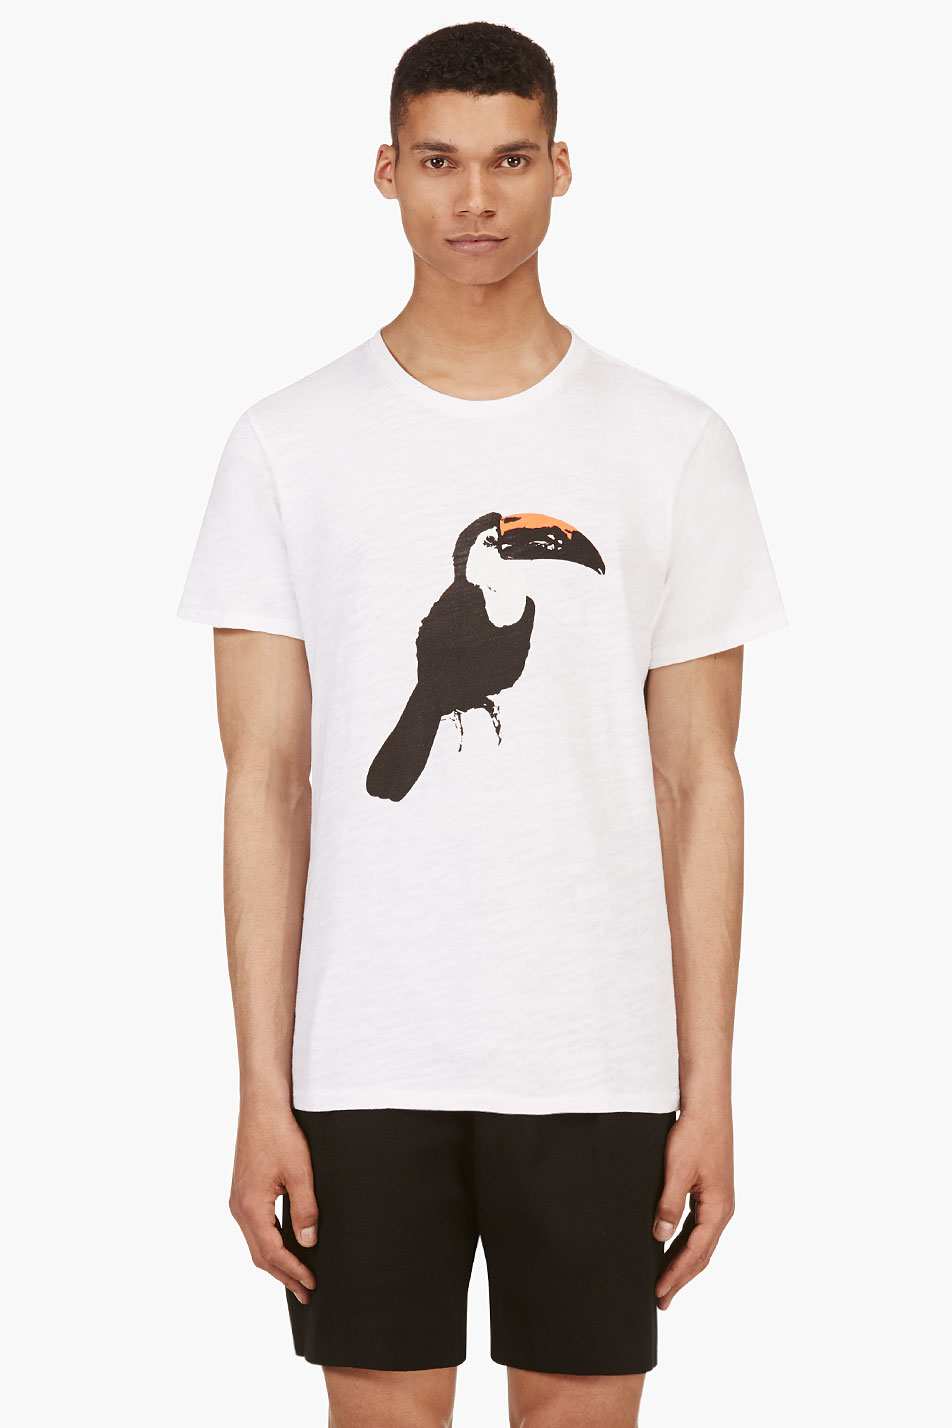 Rag and bone white toucan graphic t shirt for Rag and bone white t shirt